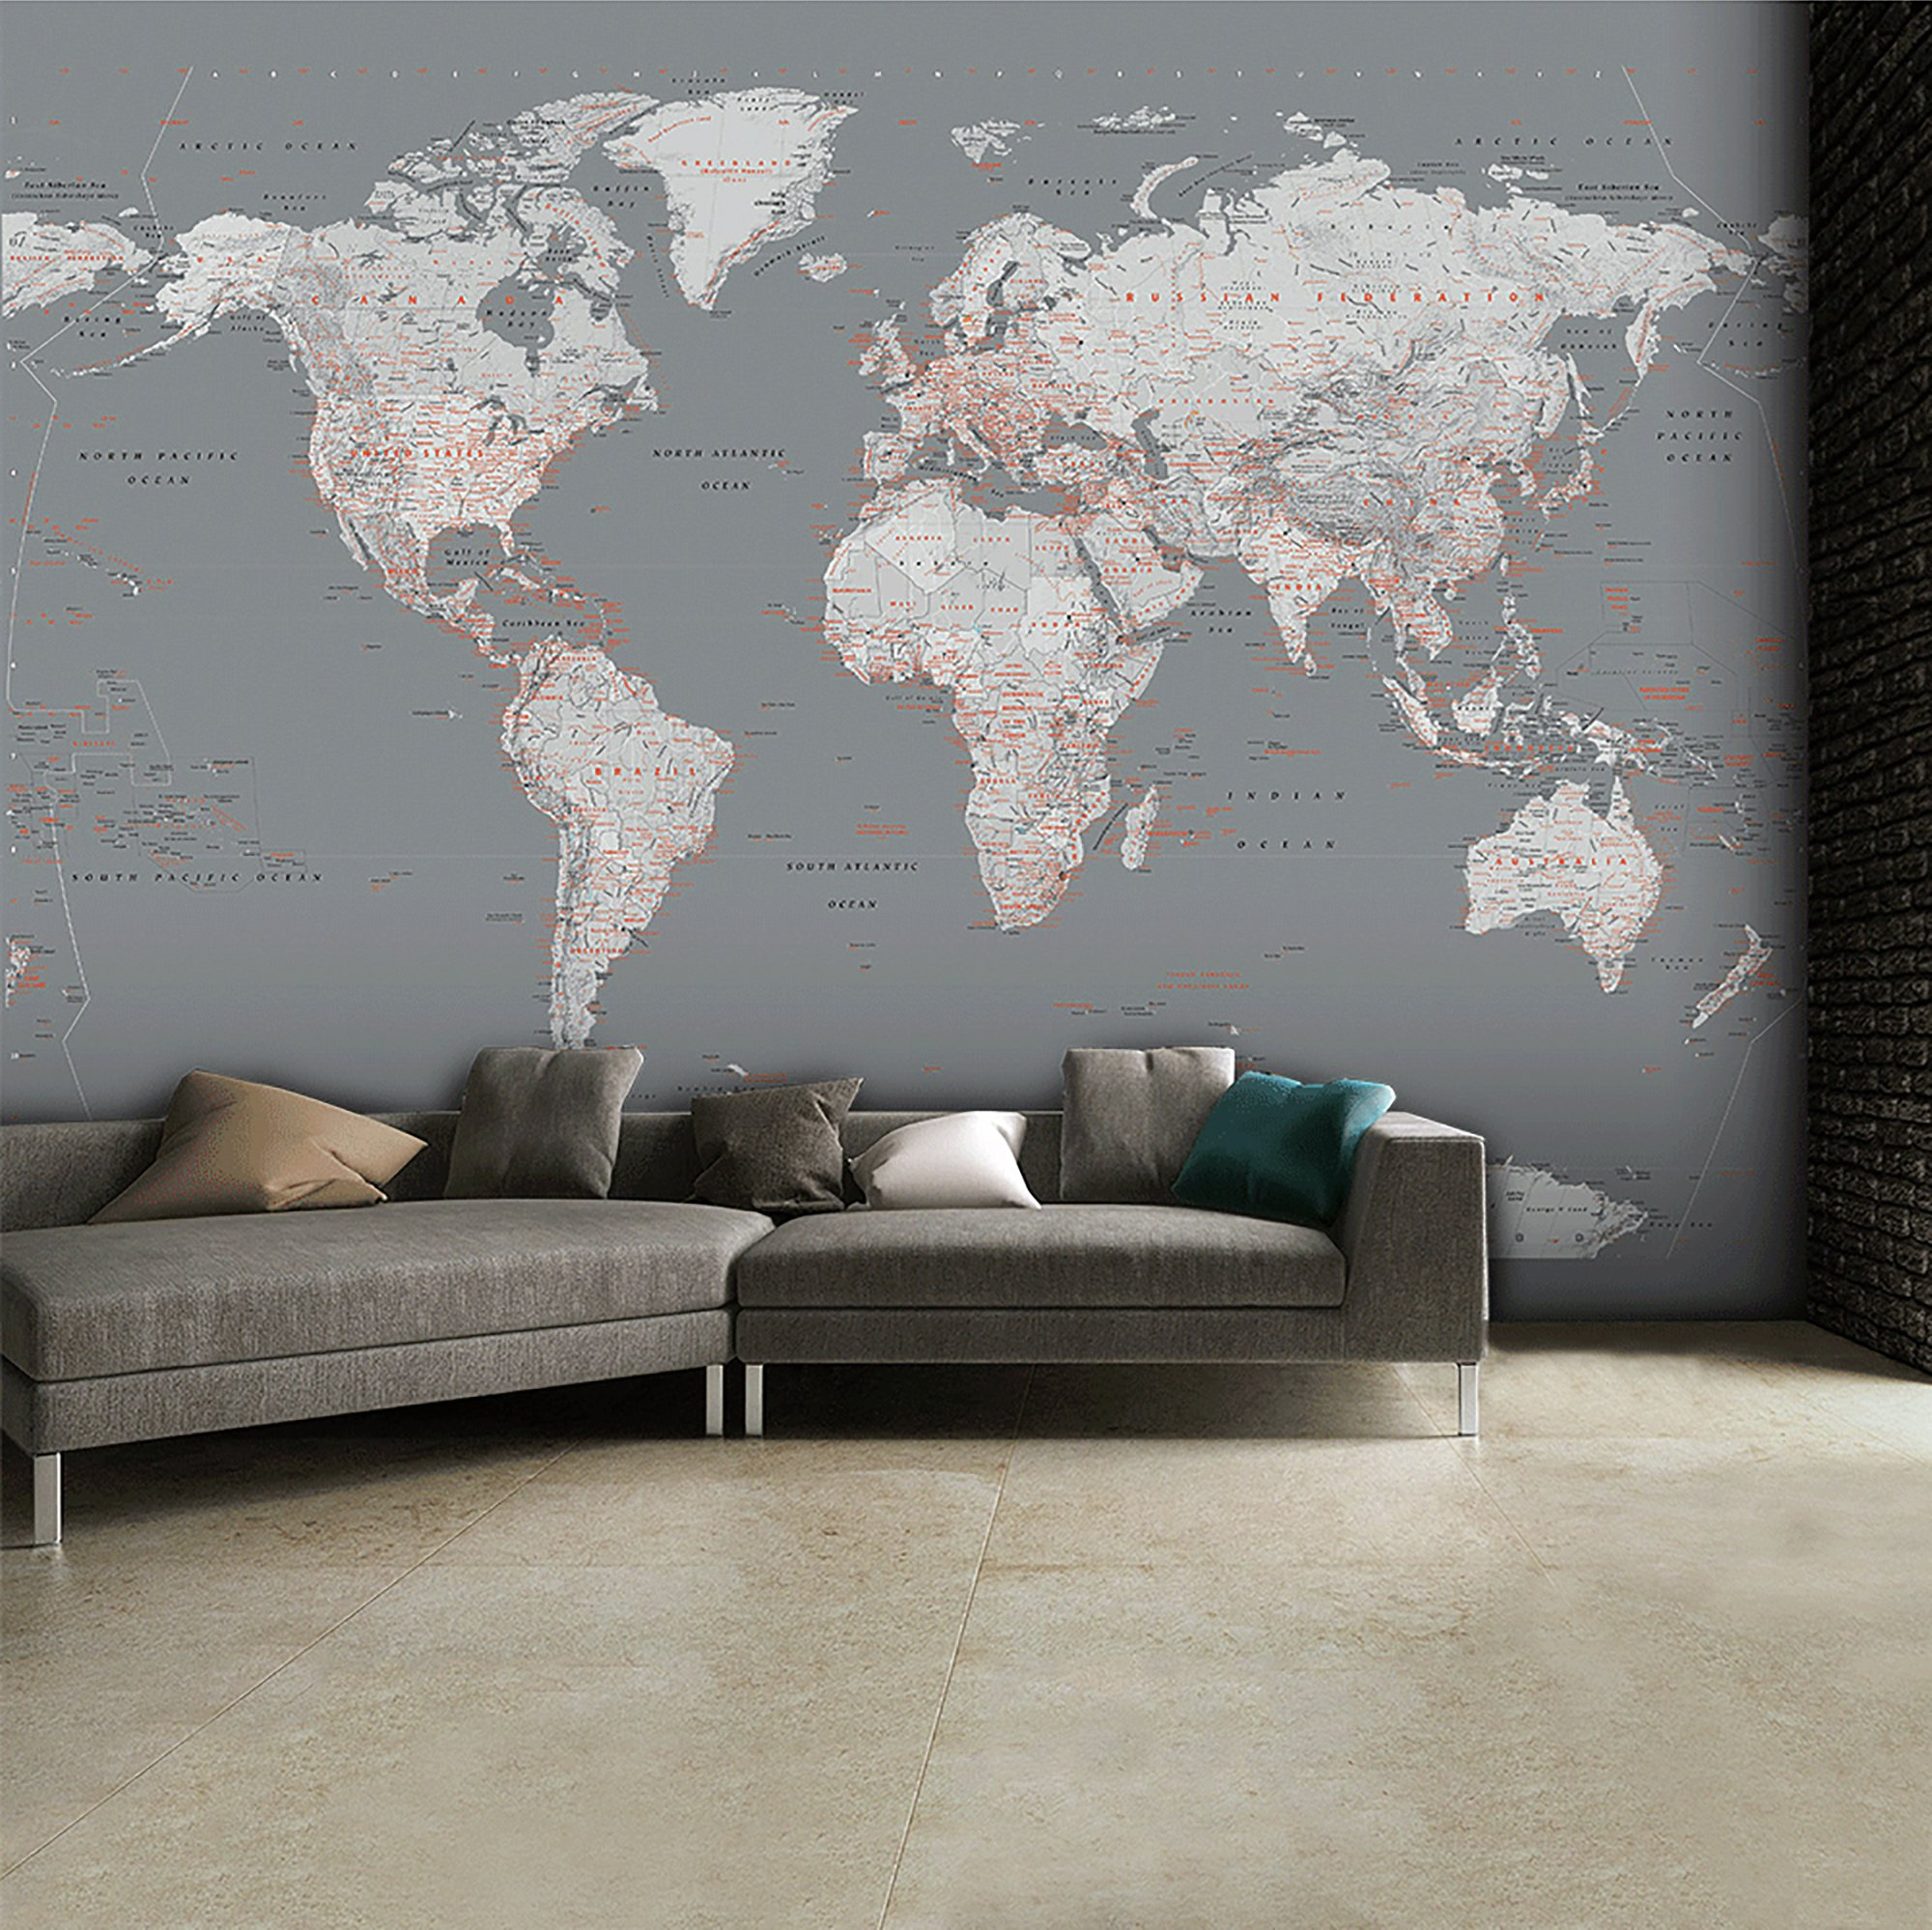 1Wall Grey Map of the World Mural